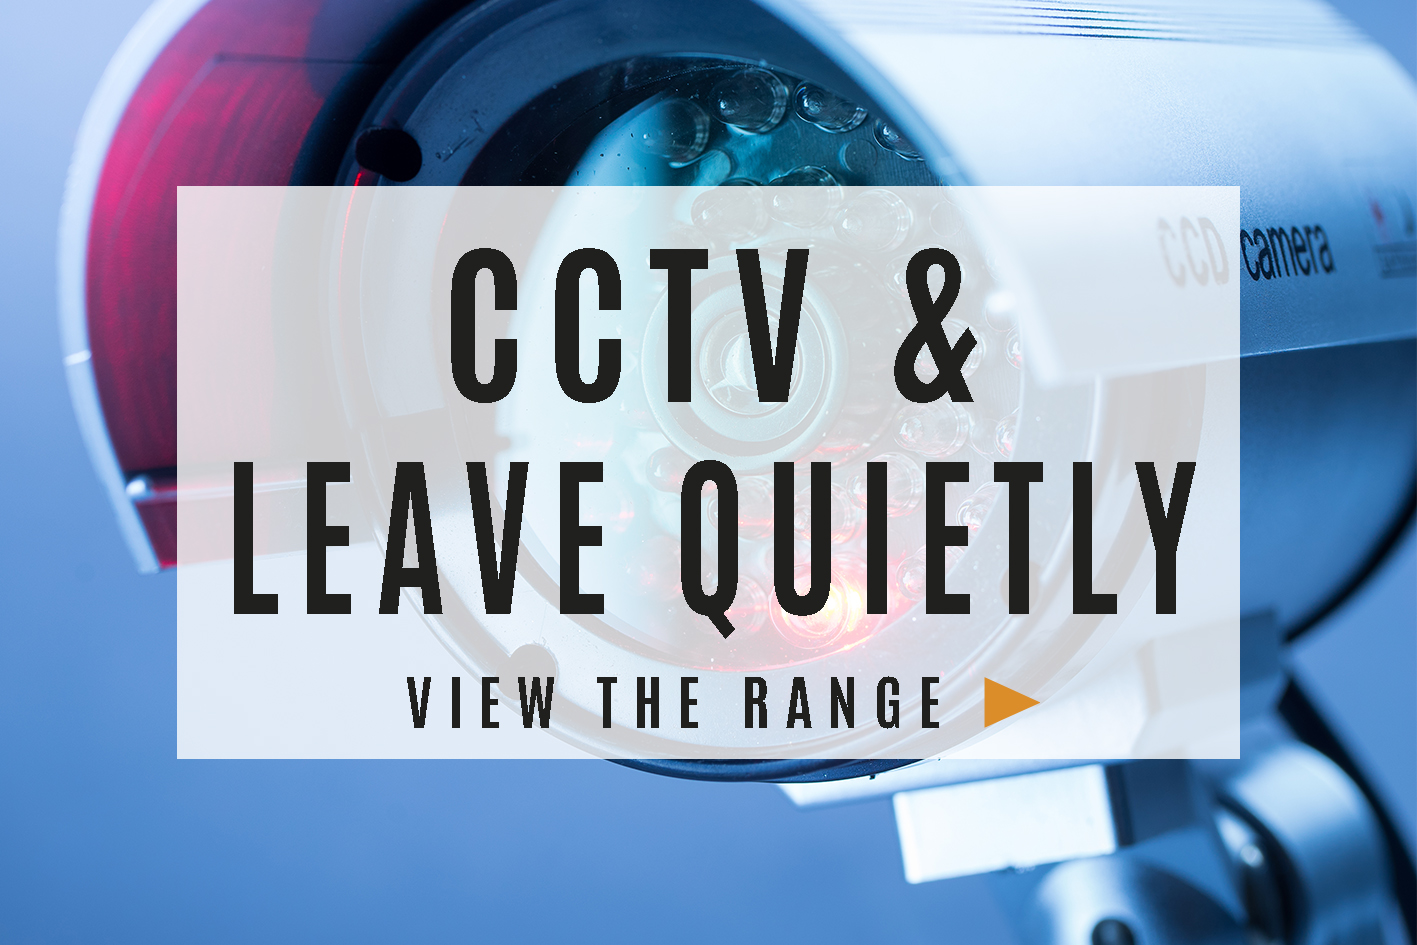 CCTV & Leave Quietly